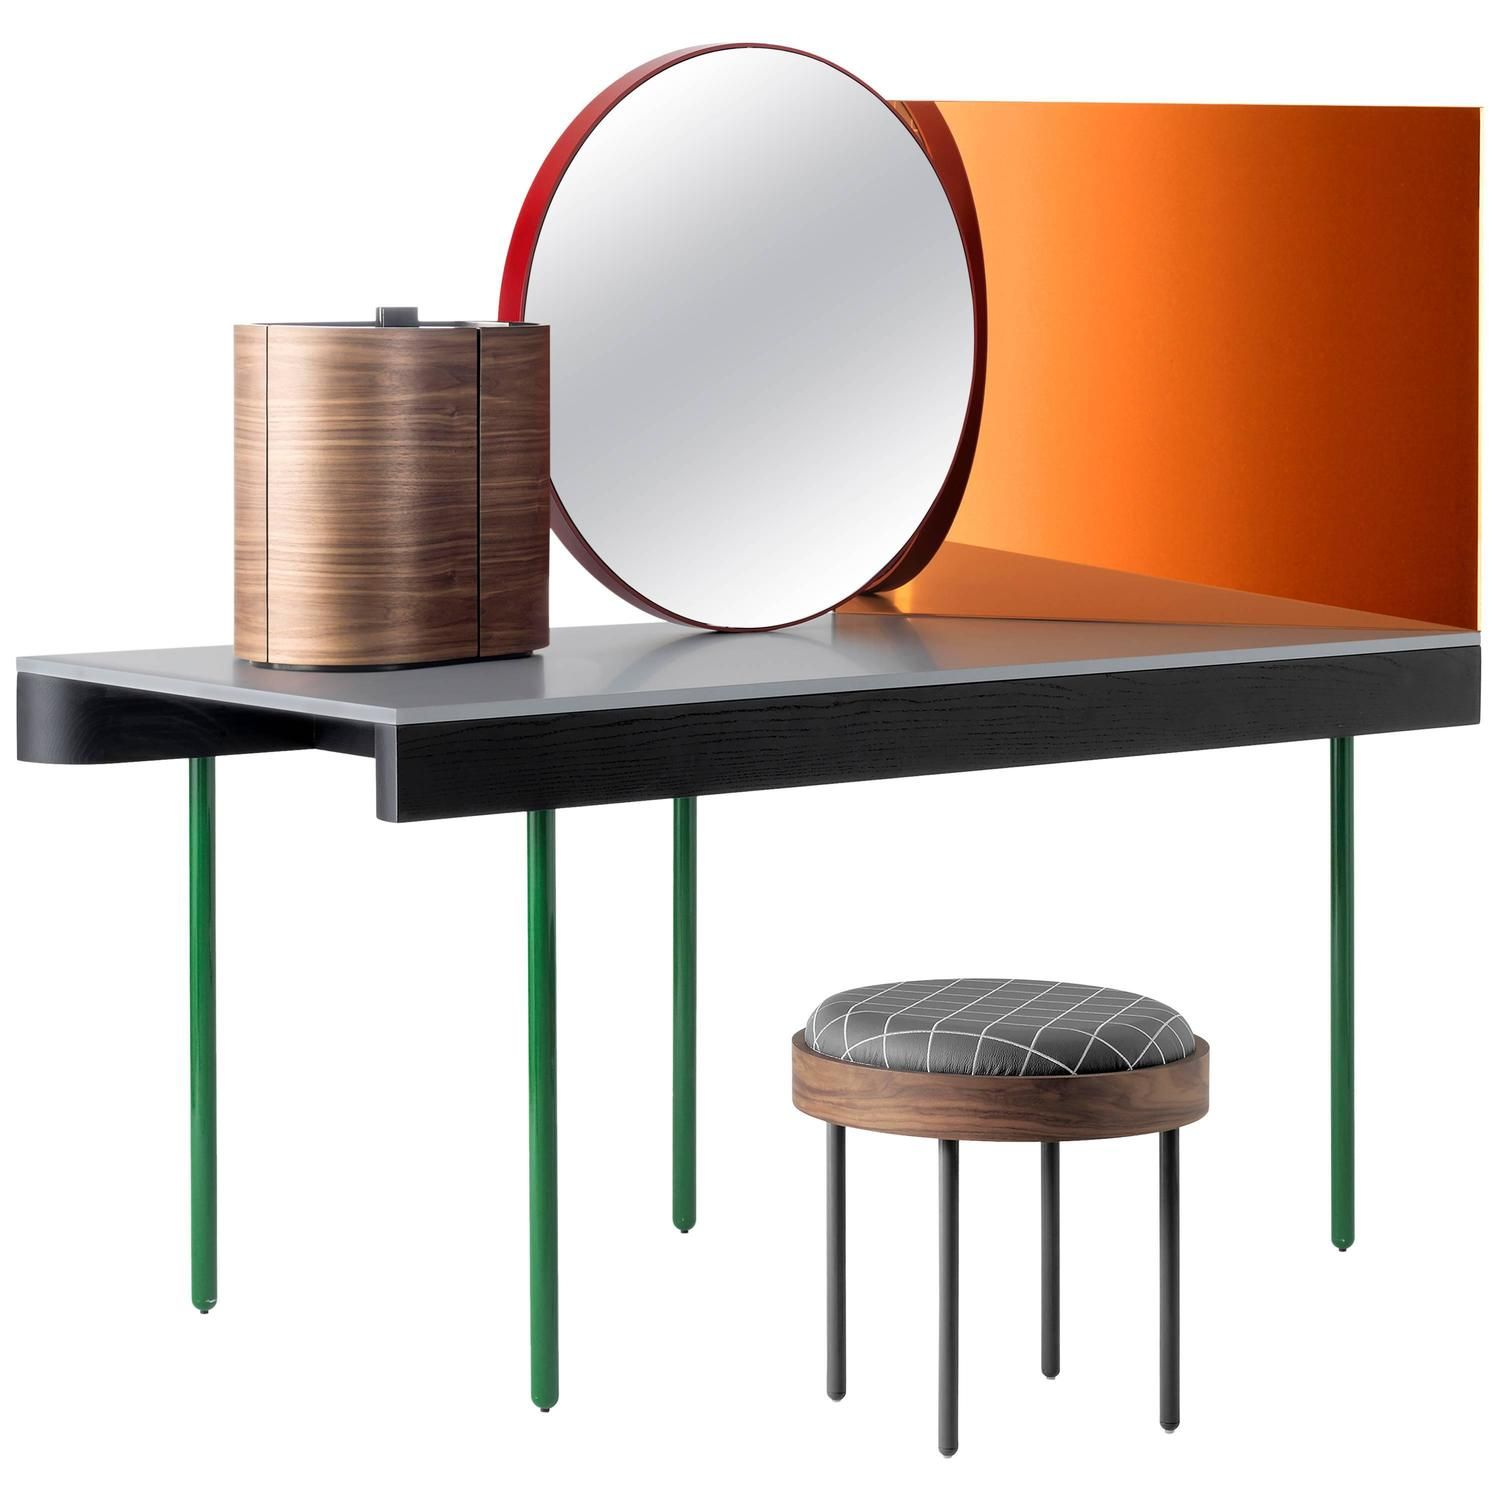 Chandlo Dressing Table Set Designed by Doshi Levien for BD